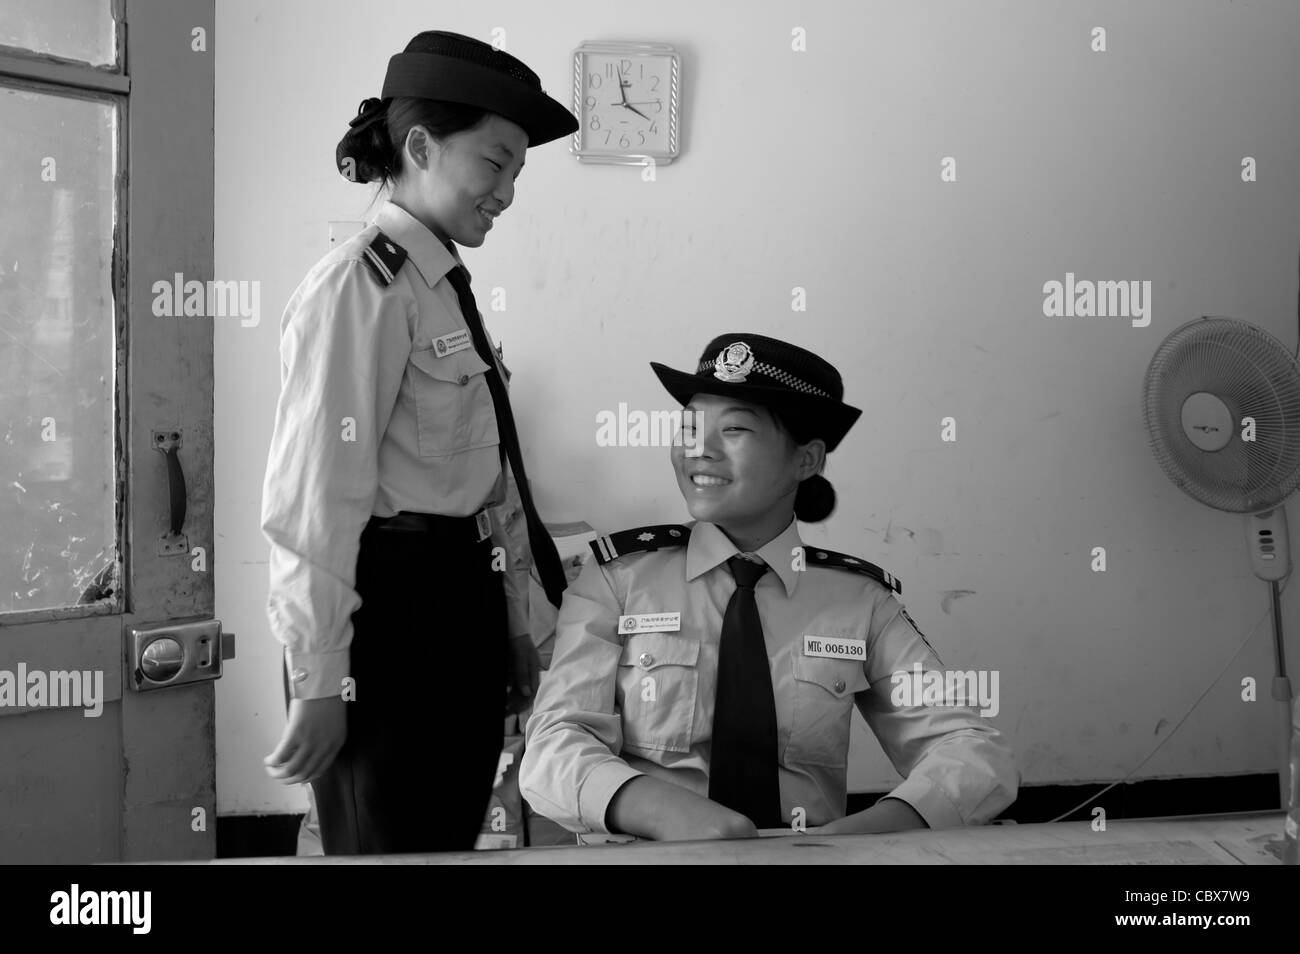 Gulou, Beijing. Police on duty at a government building. - Stock Image